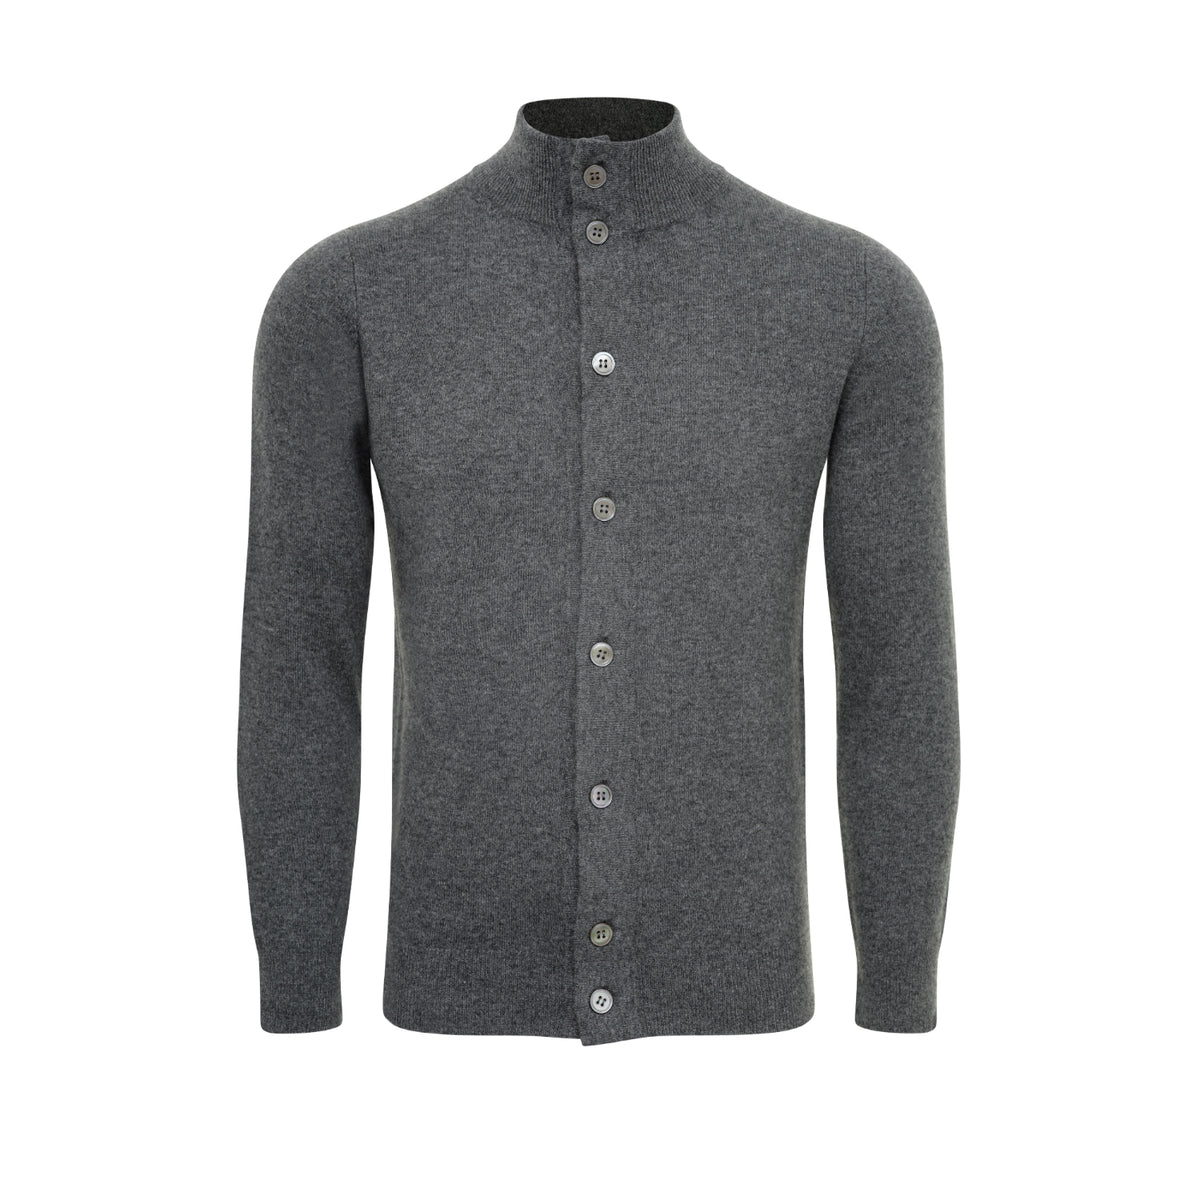 Mens Cashmere Jacket Cardigan | Grey | Shop at The Cashmere Choice | London